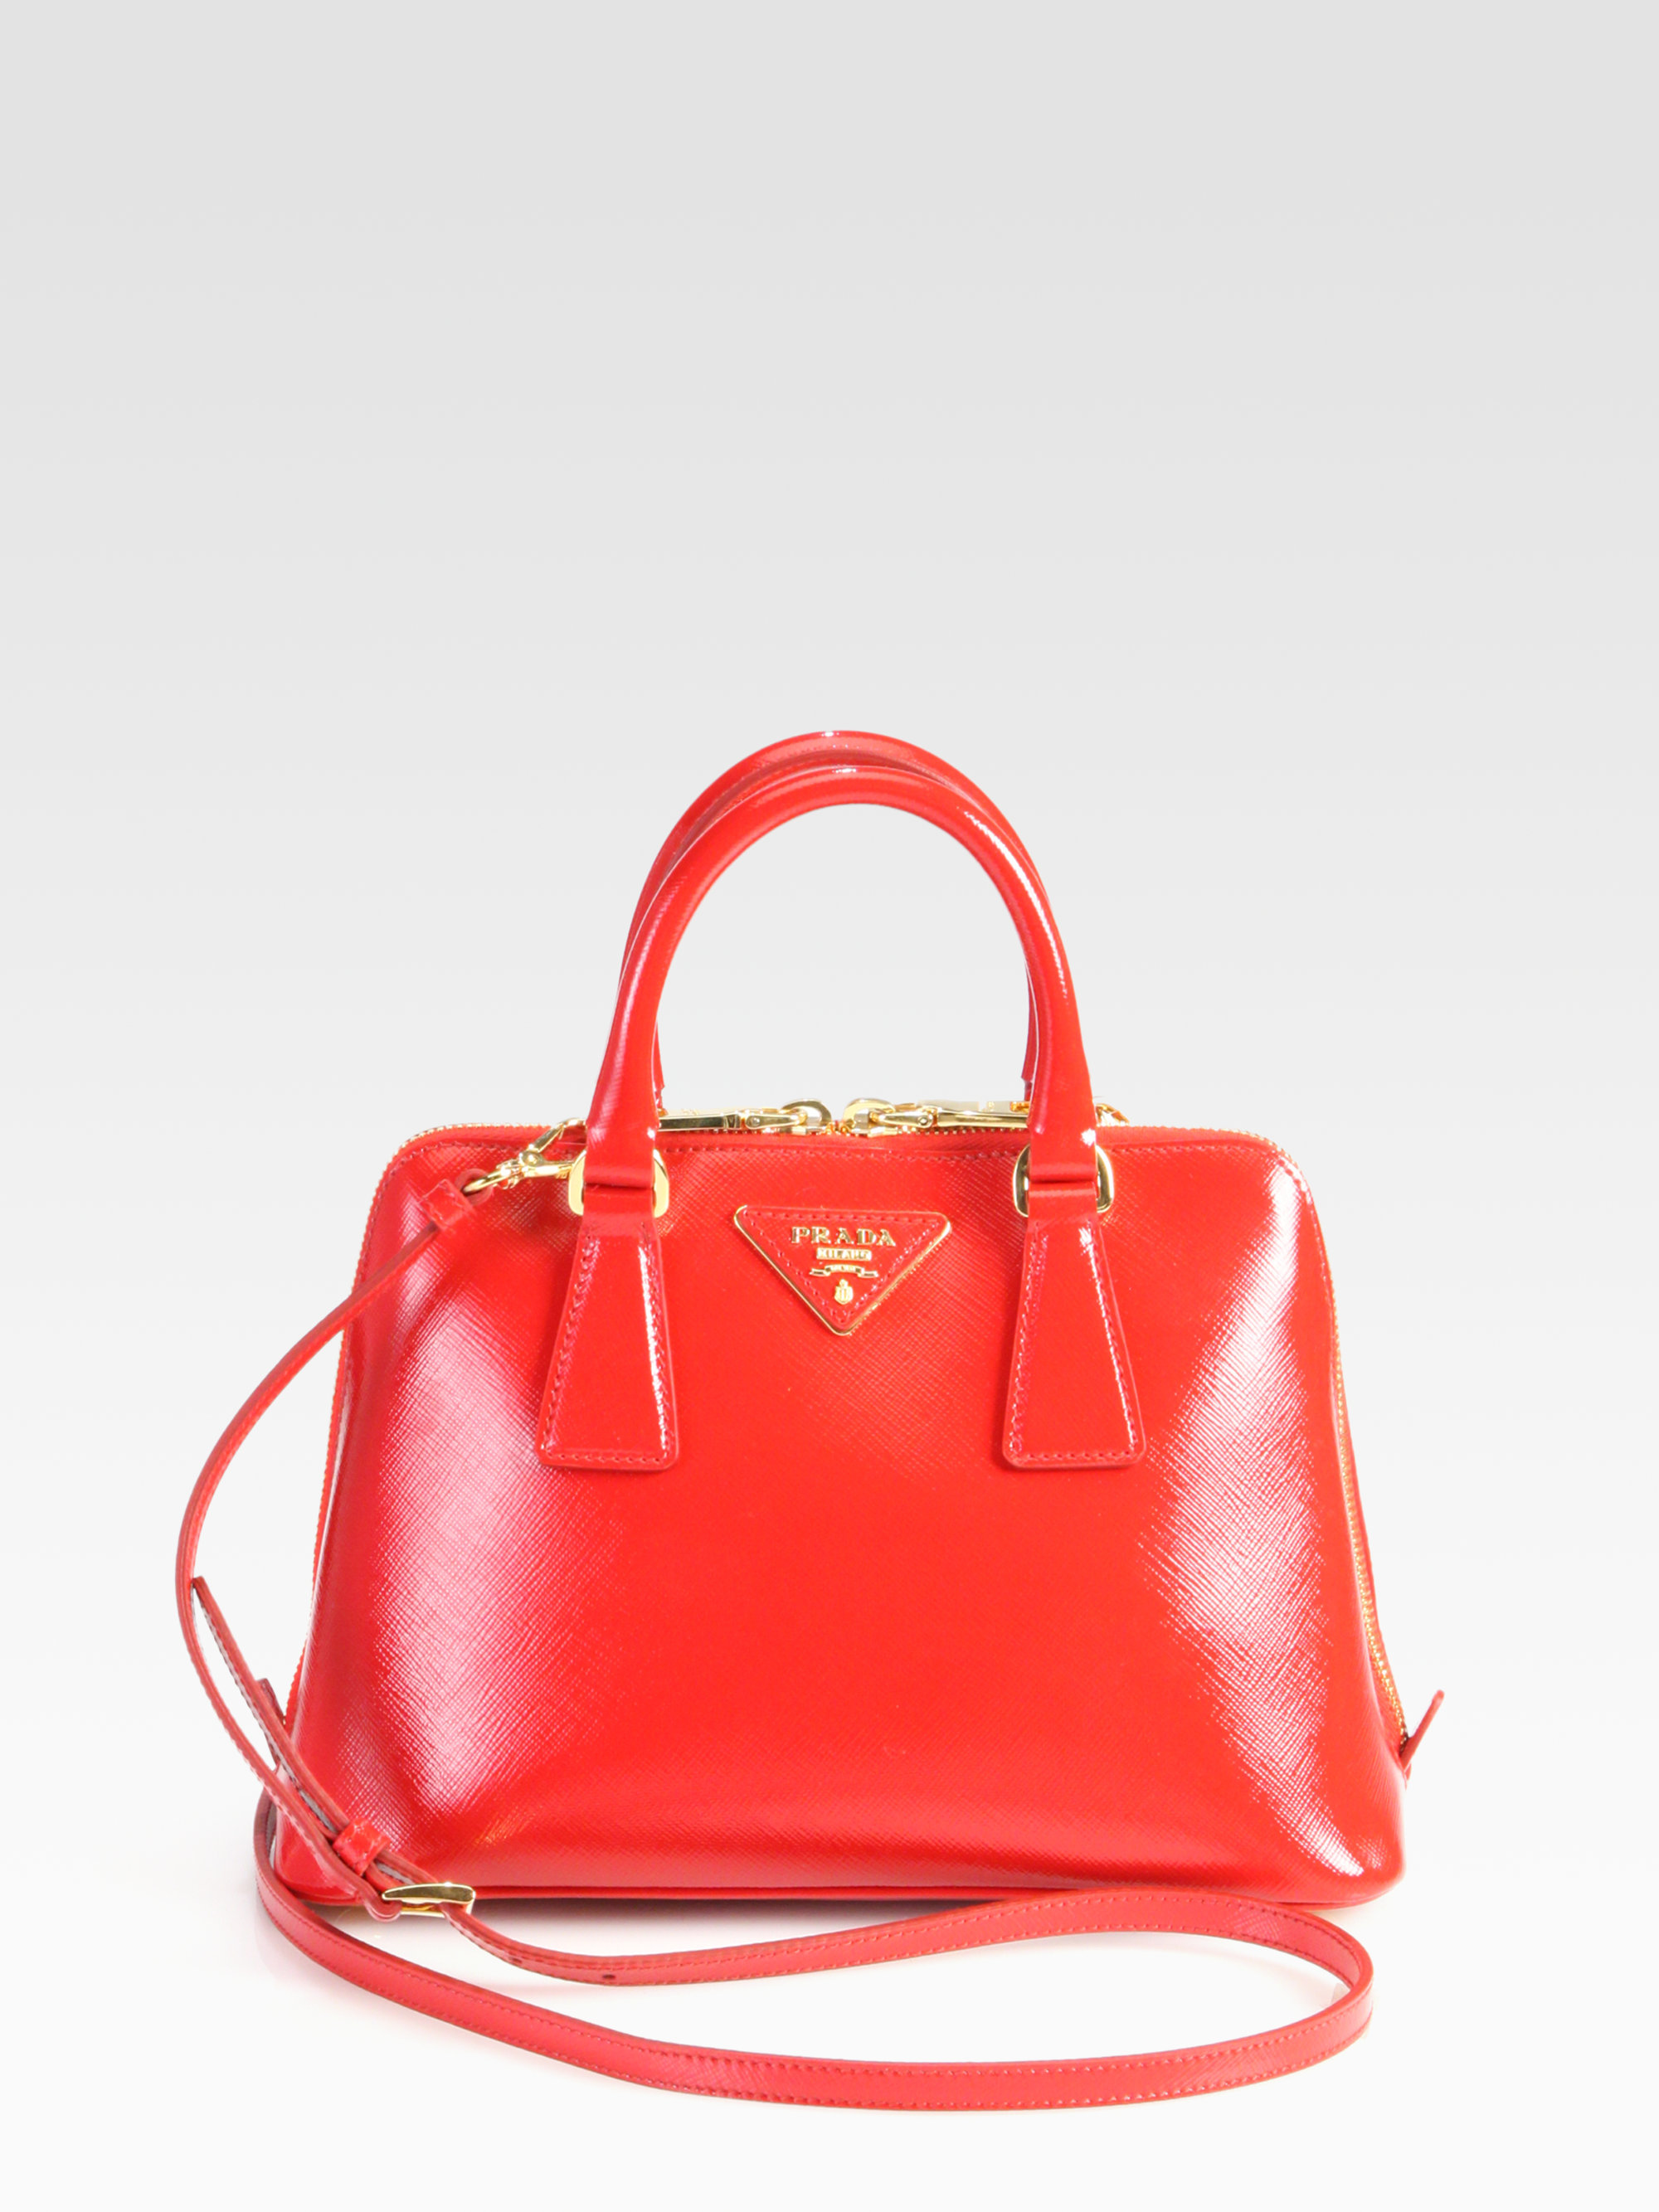 34f33588697b ... get lyst prada saffiano vernice small round tophandle bag in red 19fab  91773 low cost prada x27vernicex27 black saffiano leather ...